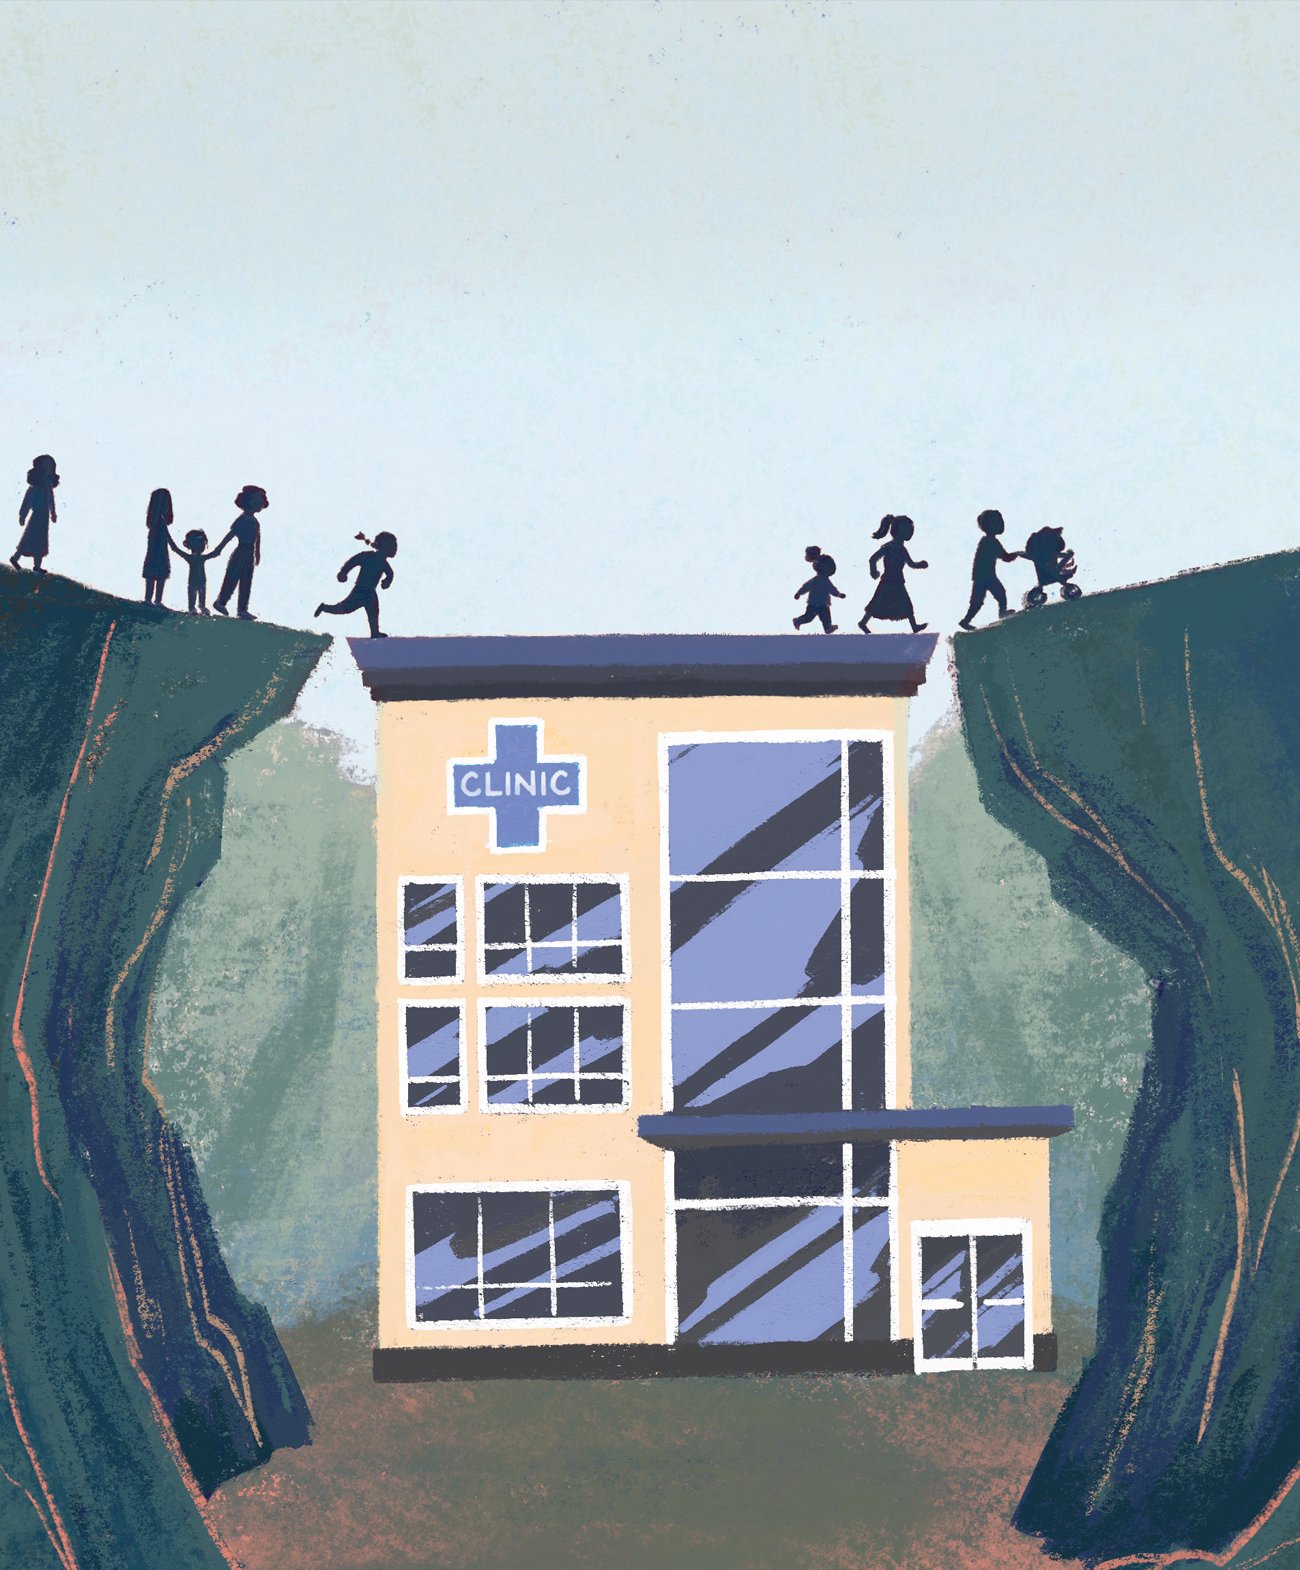 illustration of a community clinic providing a bridge for people